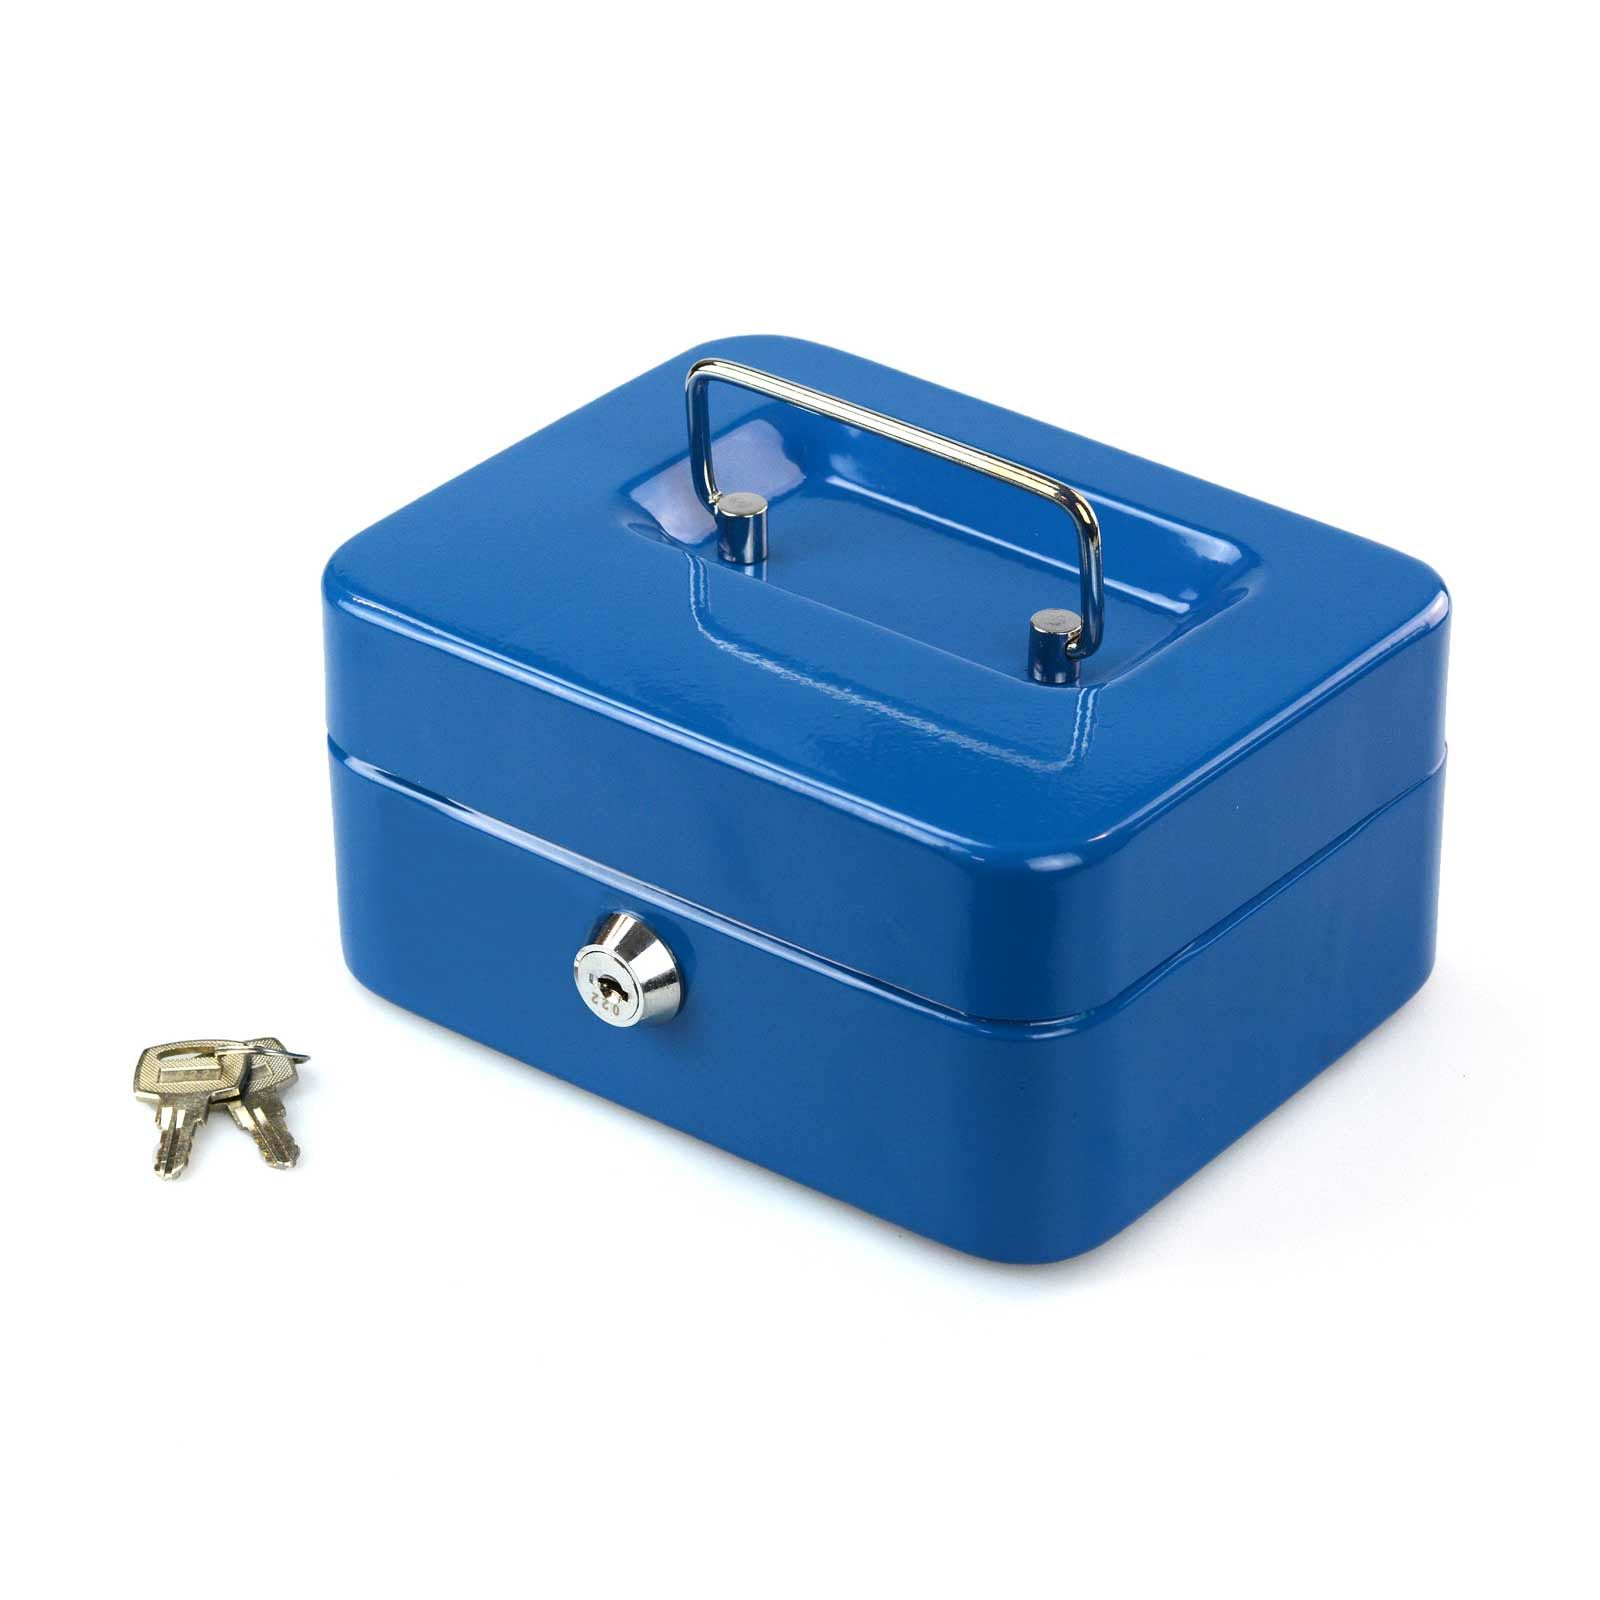 Petty-Cash-Safety-Deposit-Box-Metal-Security-Steel-Money-Bank-Coin-Tray-holder thumbnail 8